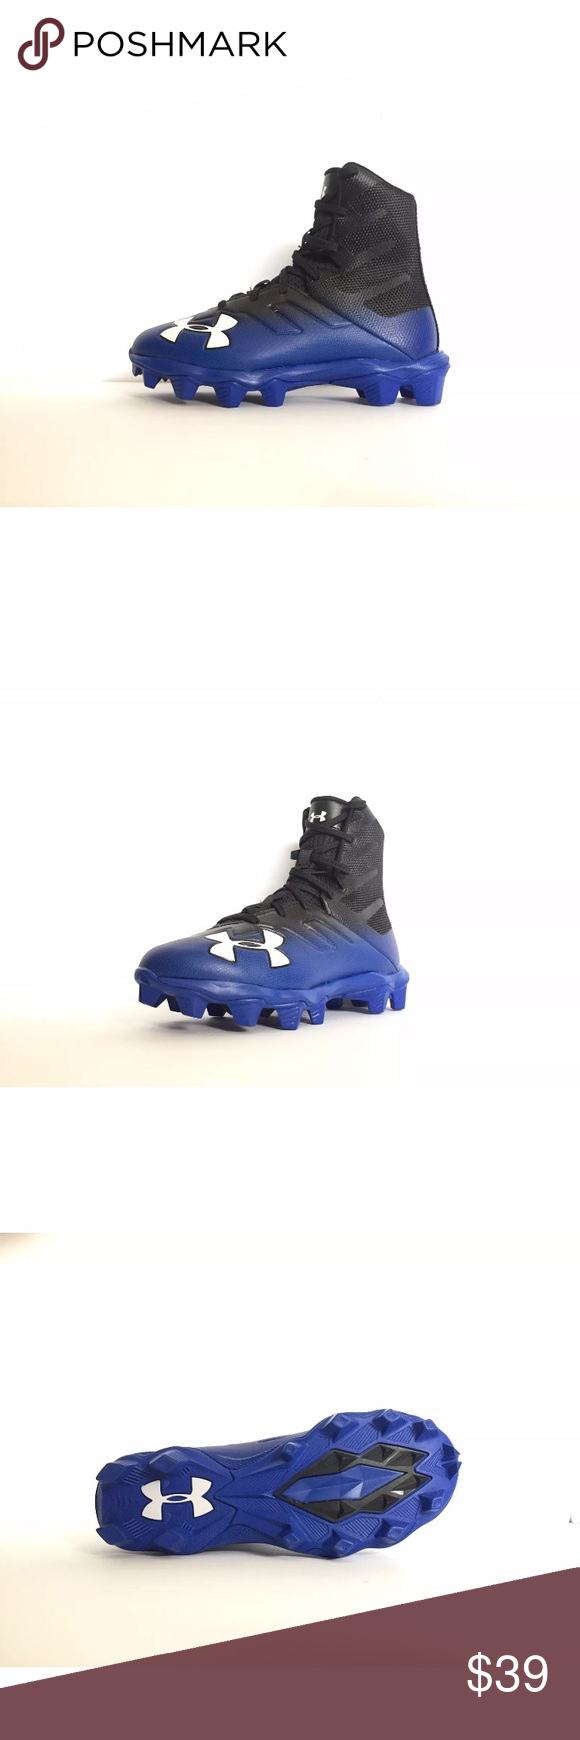 5e846ac8d New Under Armour UA Highlight RM Jr Football Cleat These Football Cleat  Shoes are brand new, have never been worn, without their box. Youth size: 1  ...